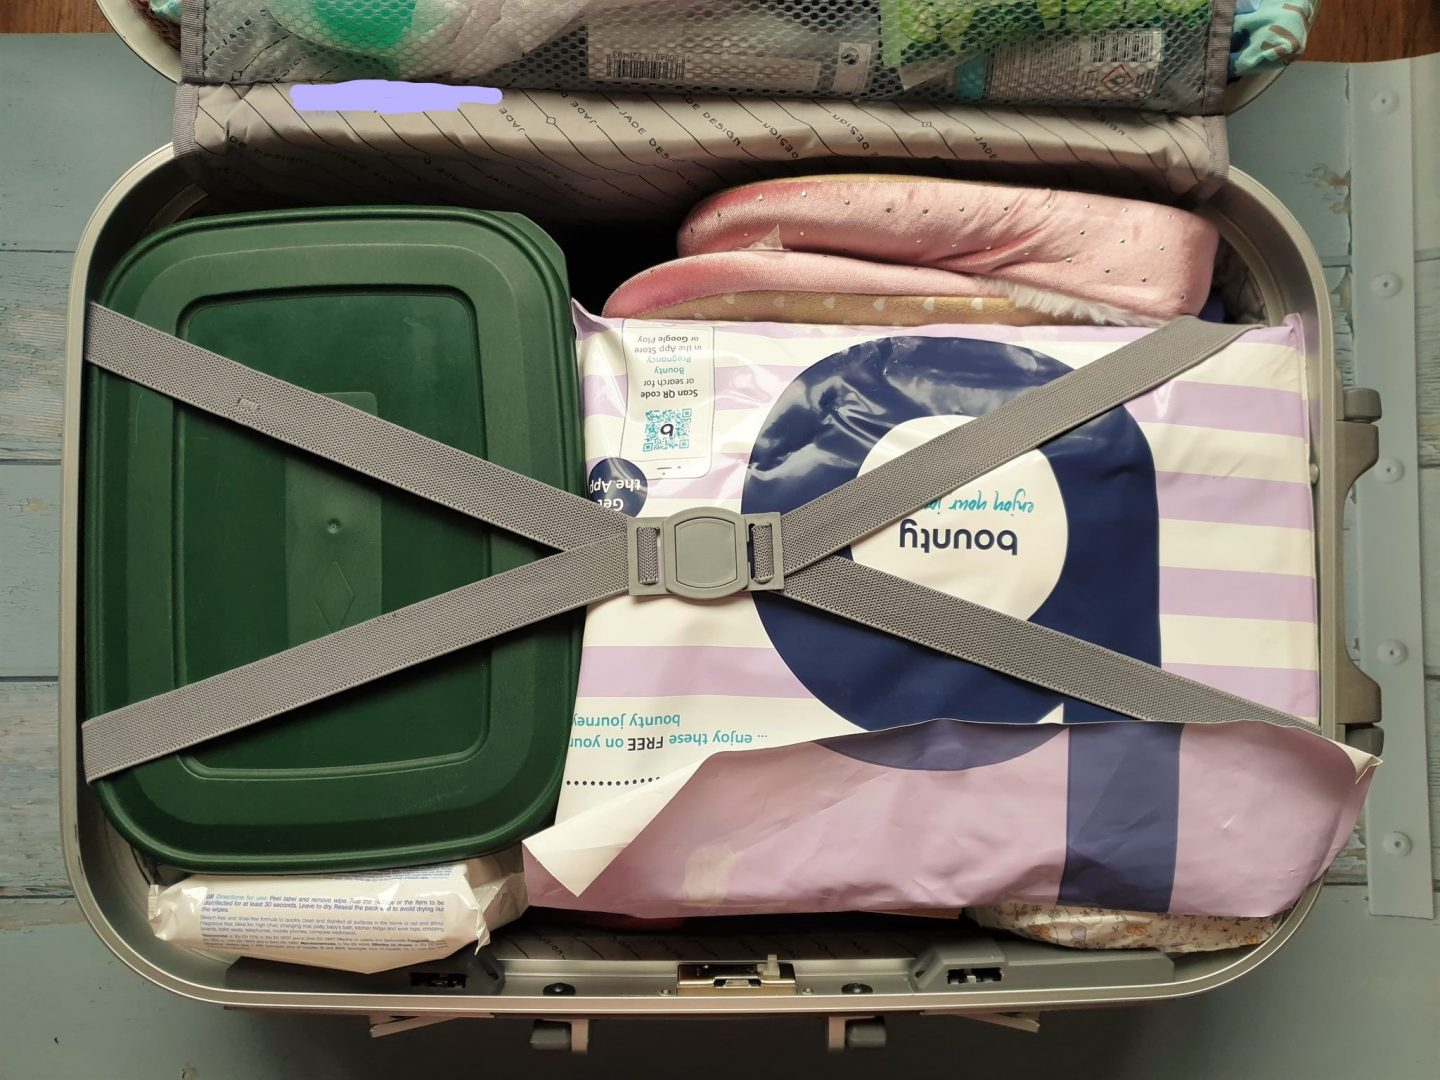 Small suitcase for hospital bag